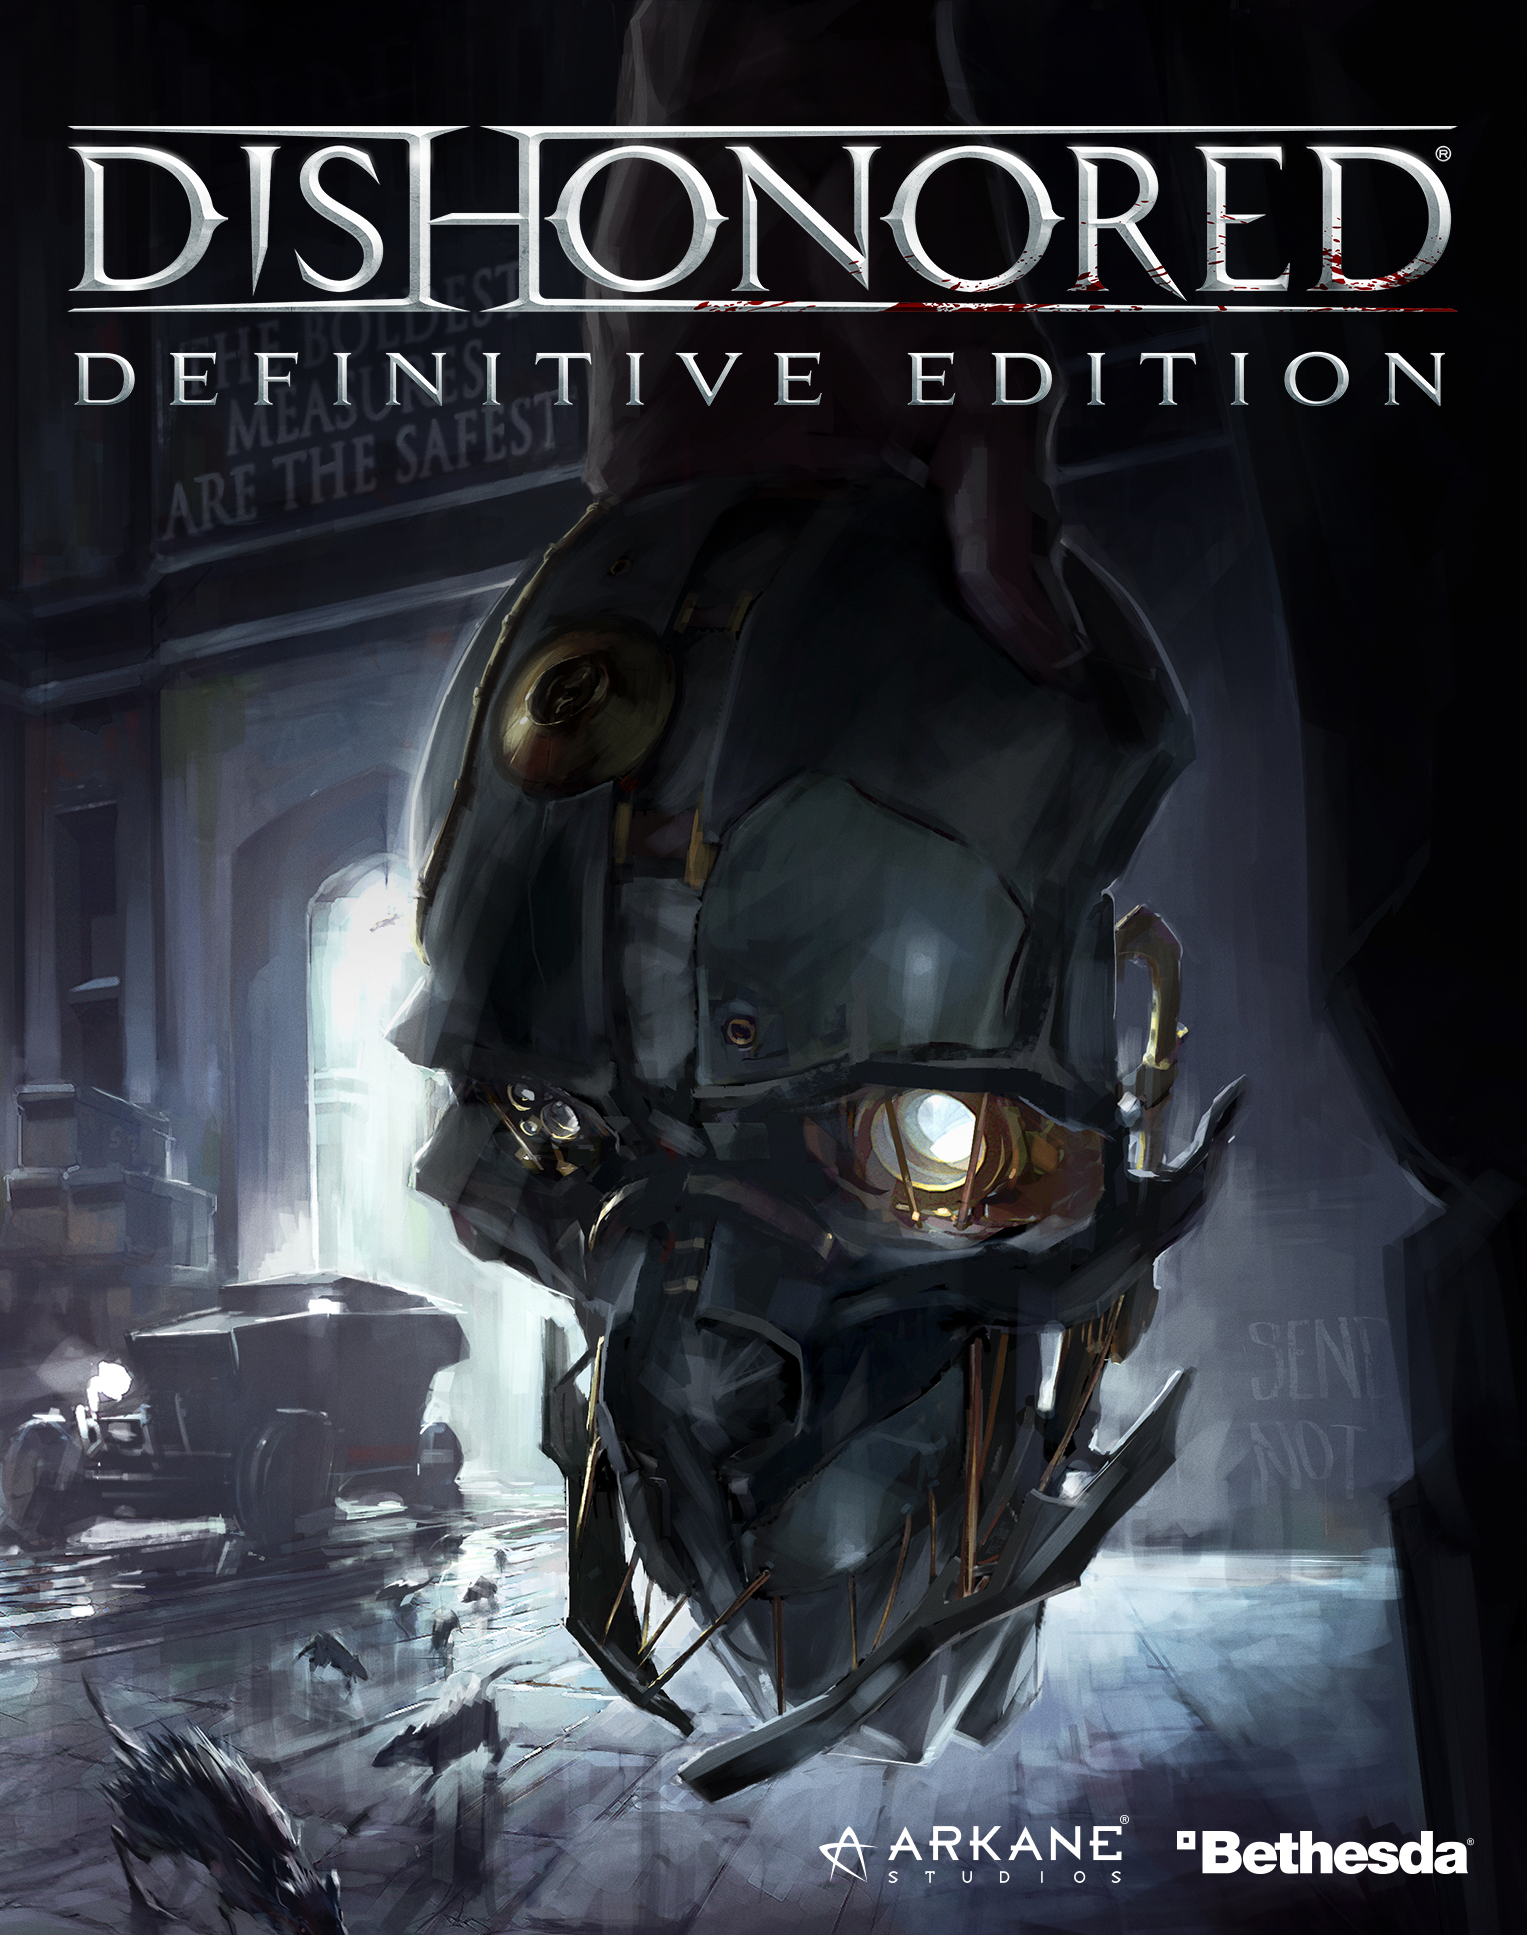 14 - Dishonored Definitive Edition Key Art